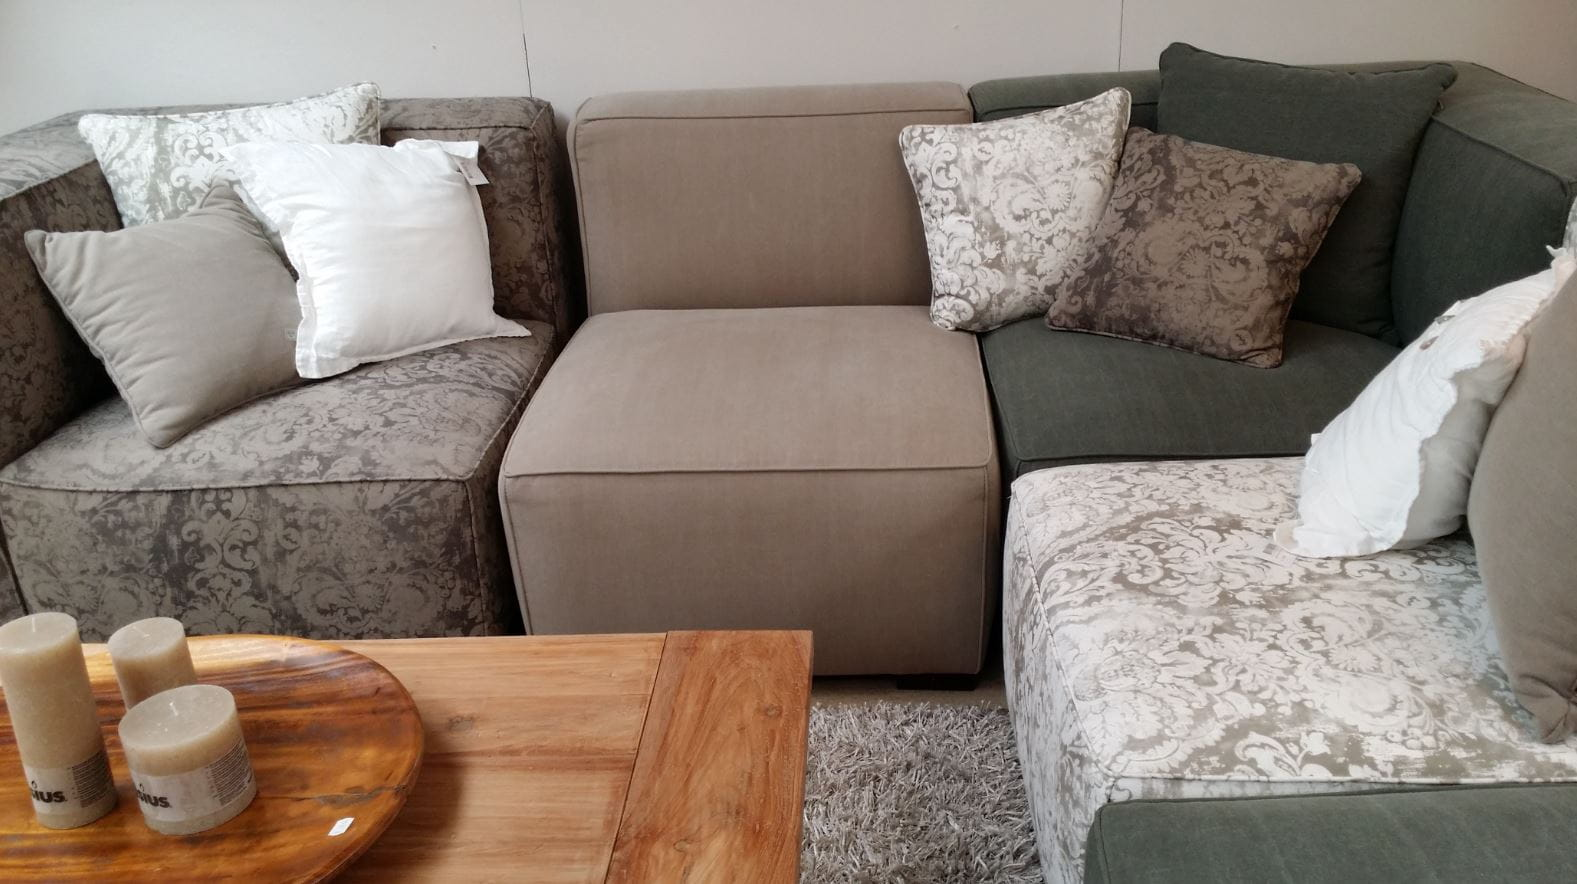 L - Type upholstered sofa unit.